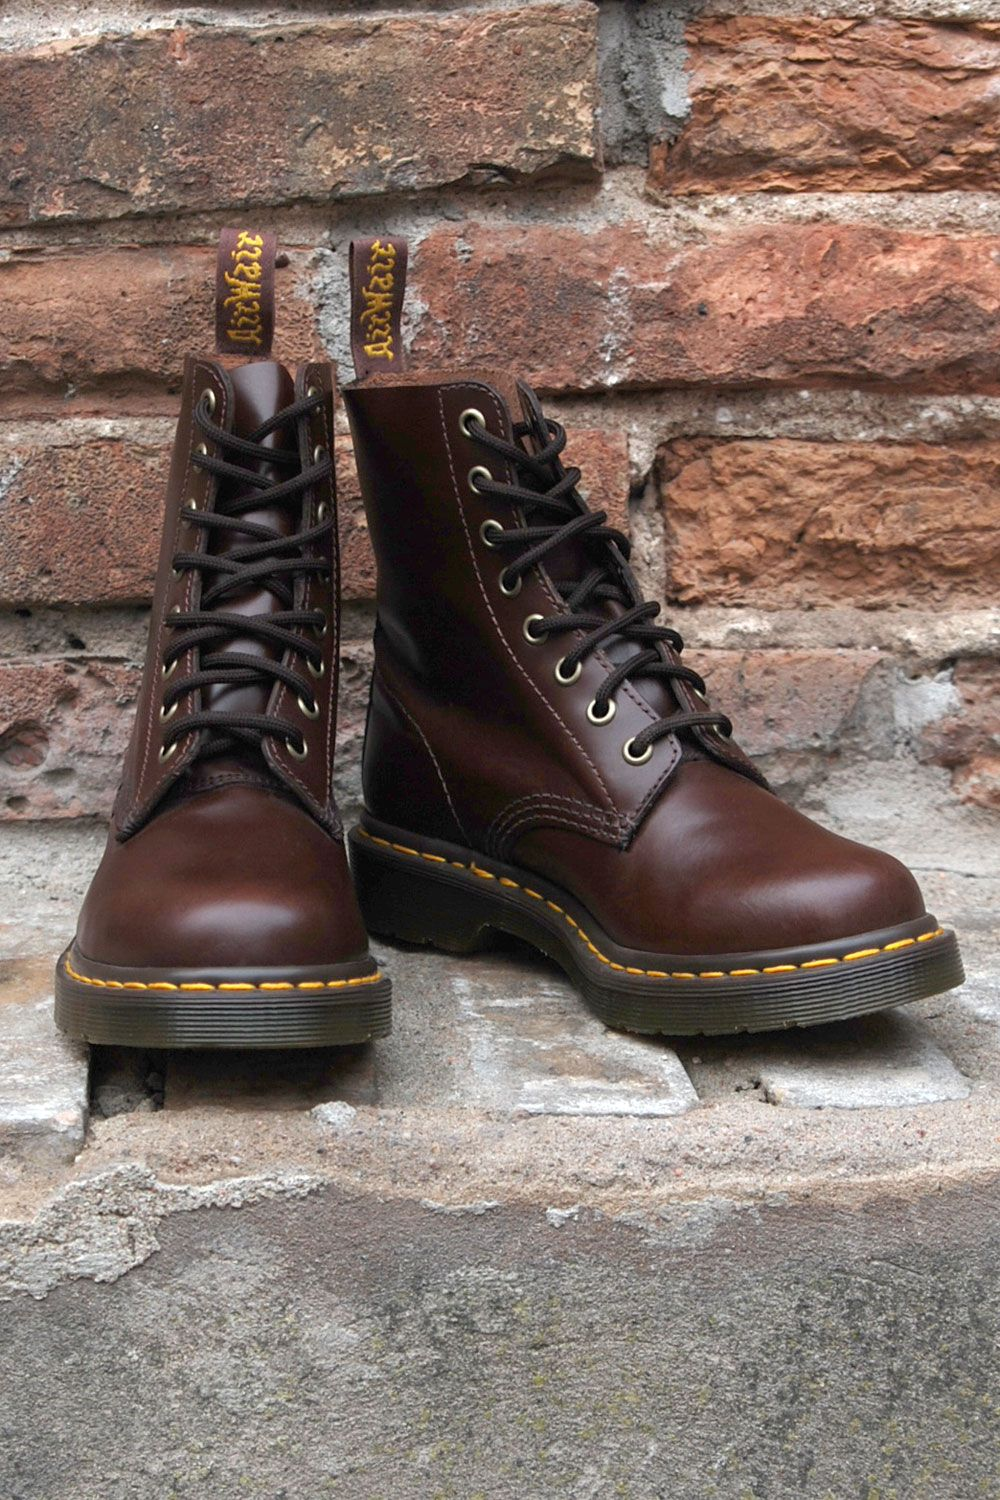 DR MARTENS 1460 PASCAL BOANIL BRUSH